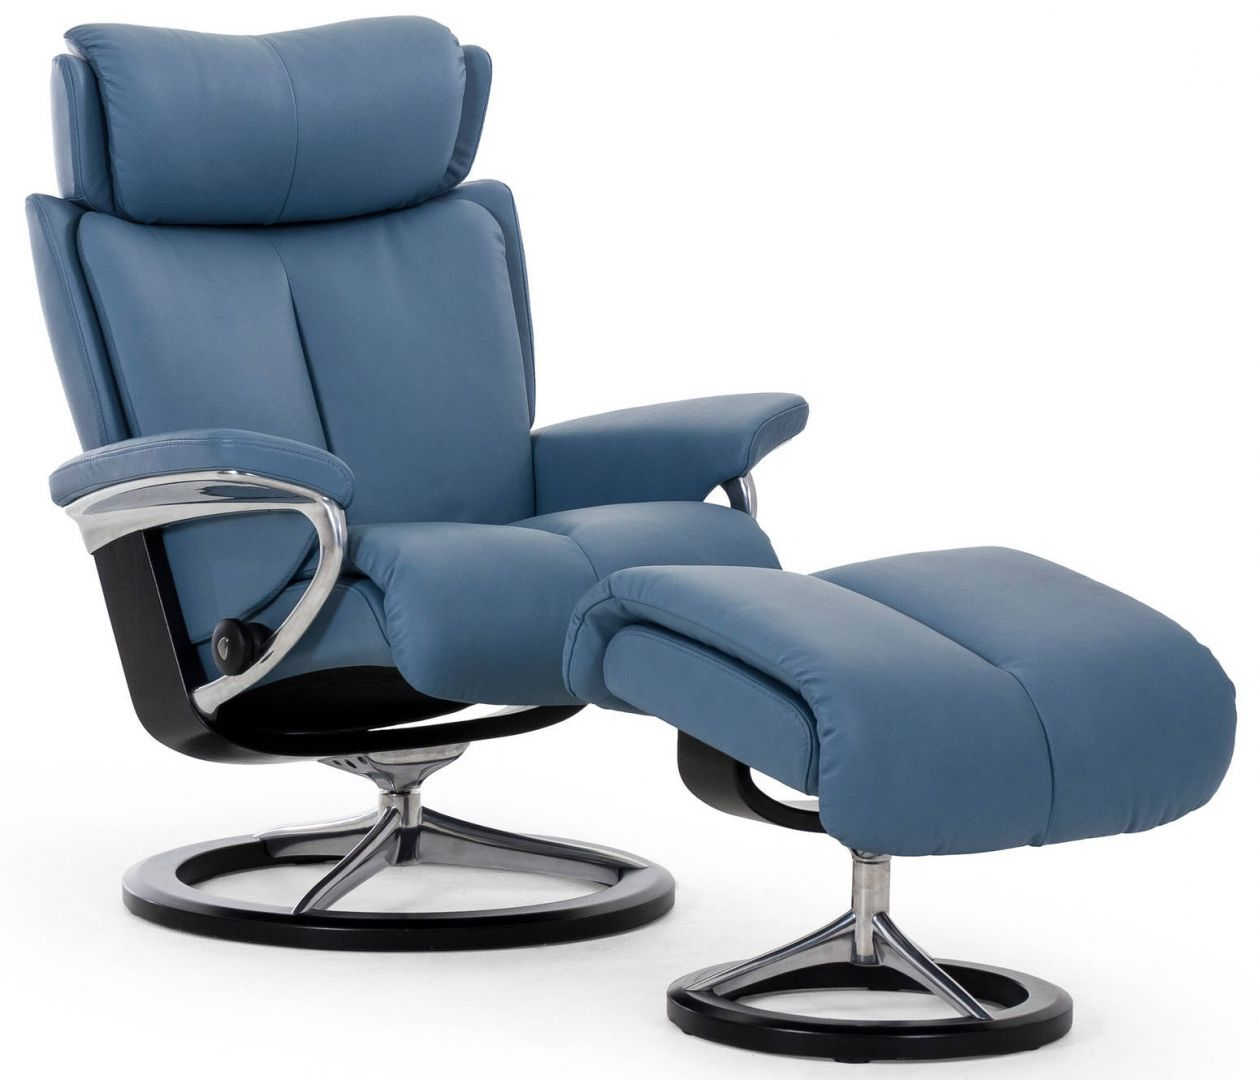 Stressless Magic Chair Amp Ottoman Signature Base The Century House Madison WI